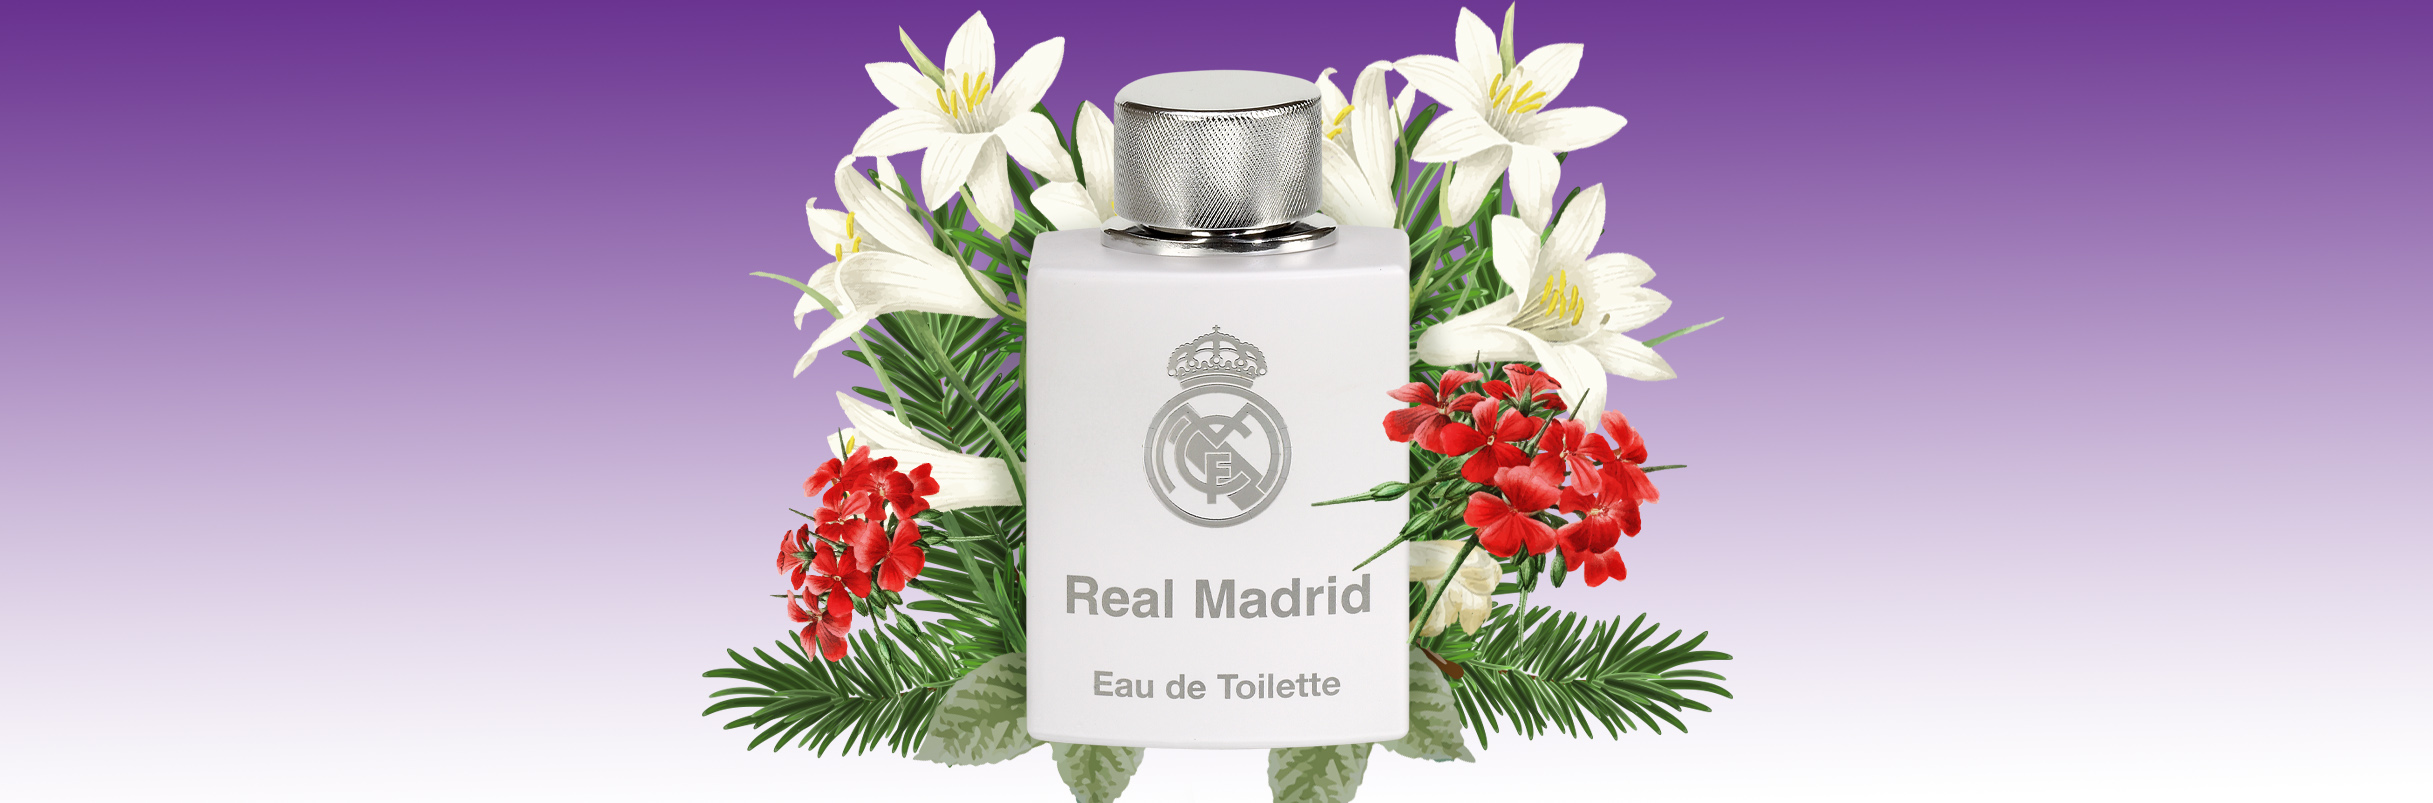 The Real Madrid fragrances